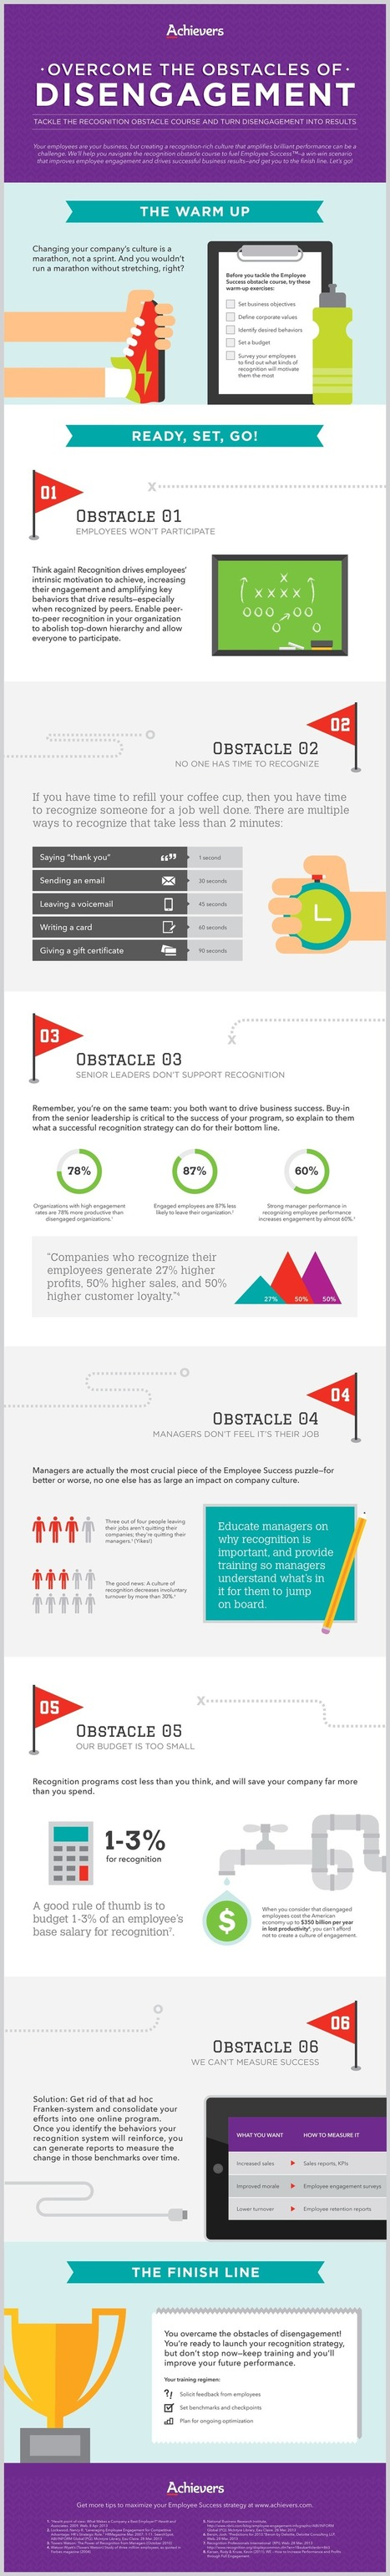 The Obstacle Course of Employee Engagement [INFOGRAPHIC] | Harmonious and Balanced Workplace | Scoop.it